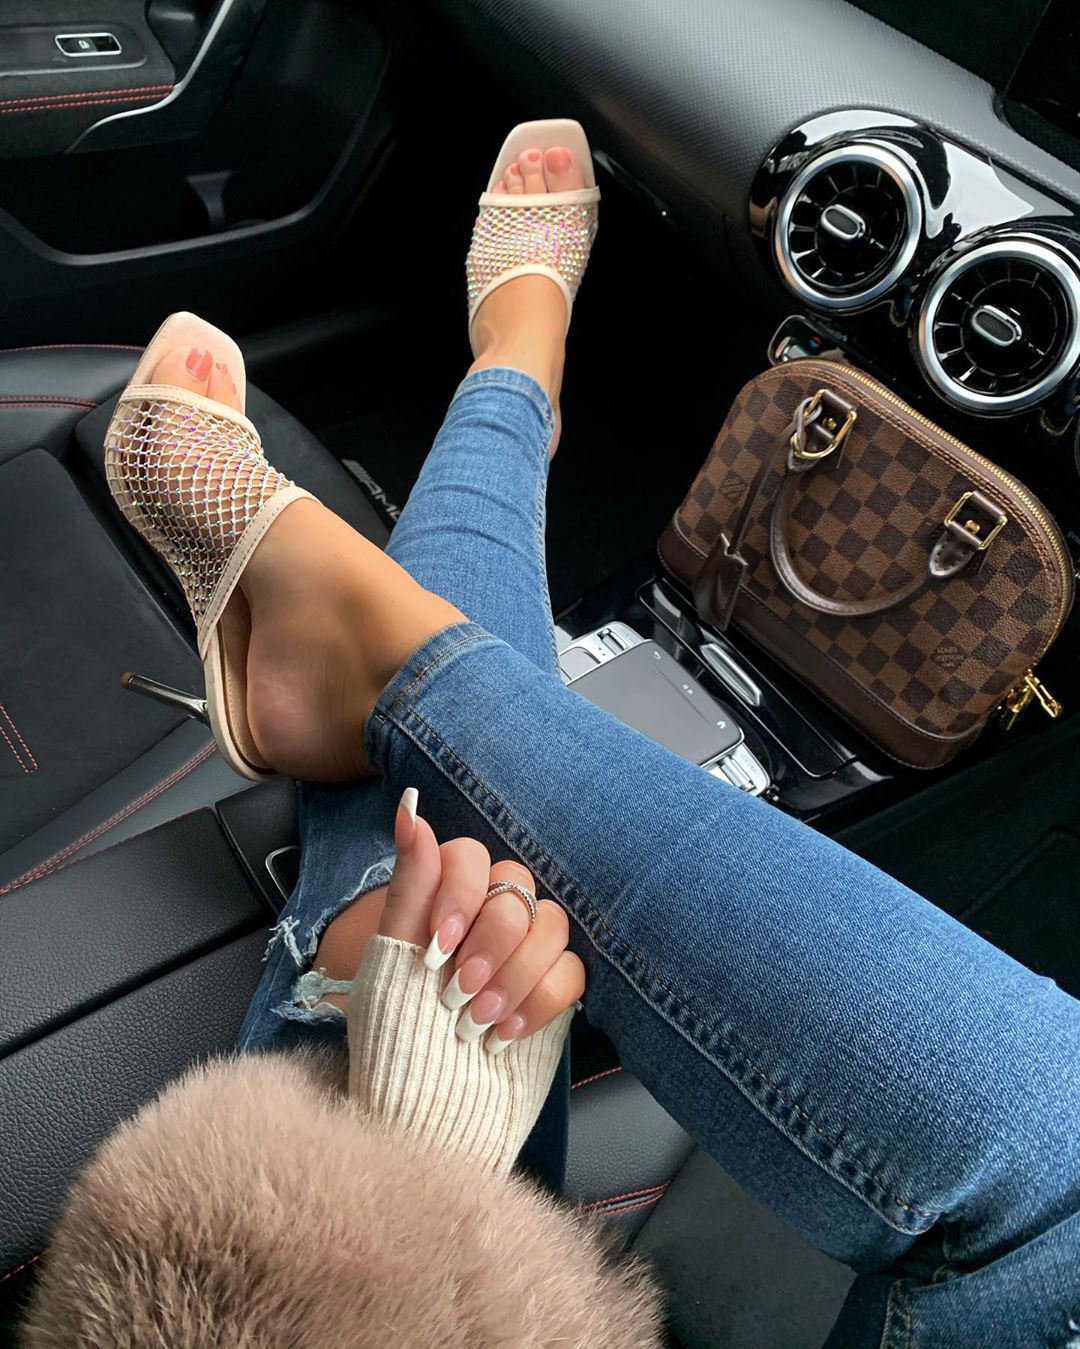 Ruby Fairs Instagram legs picture, steering wheel, steering part